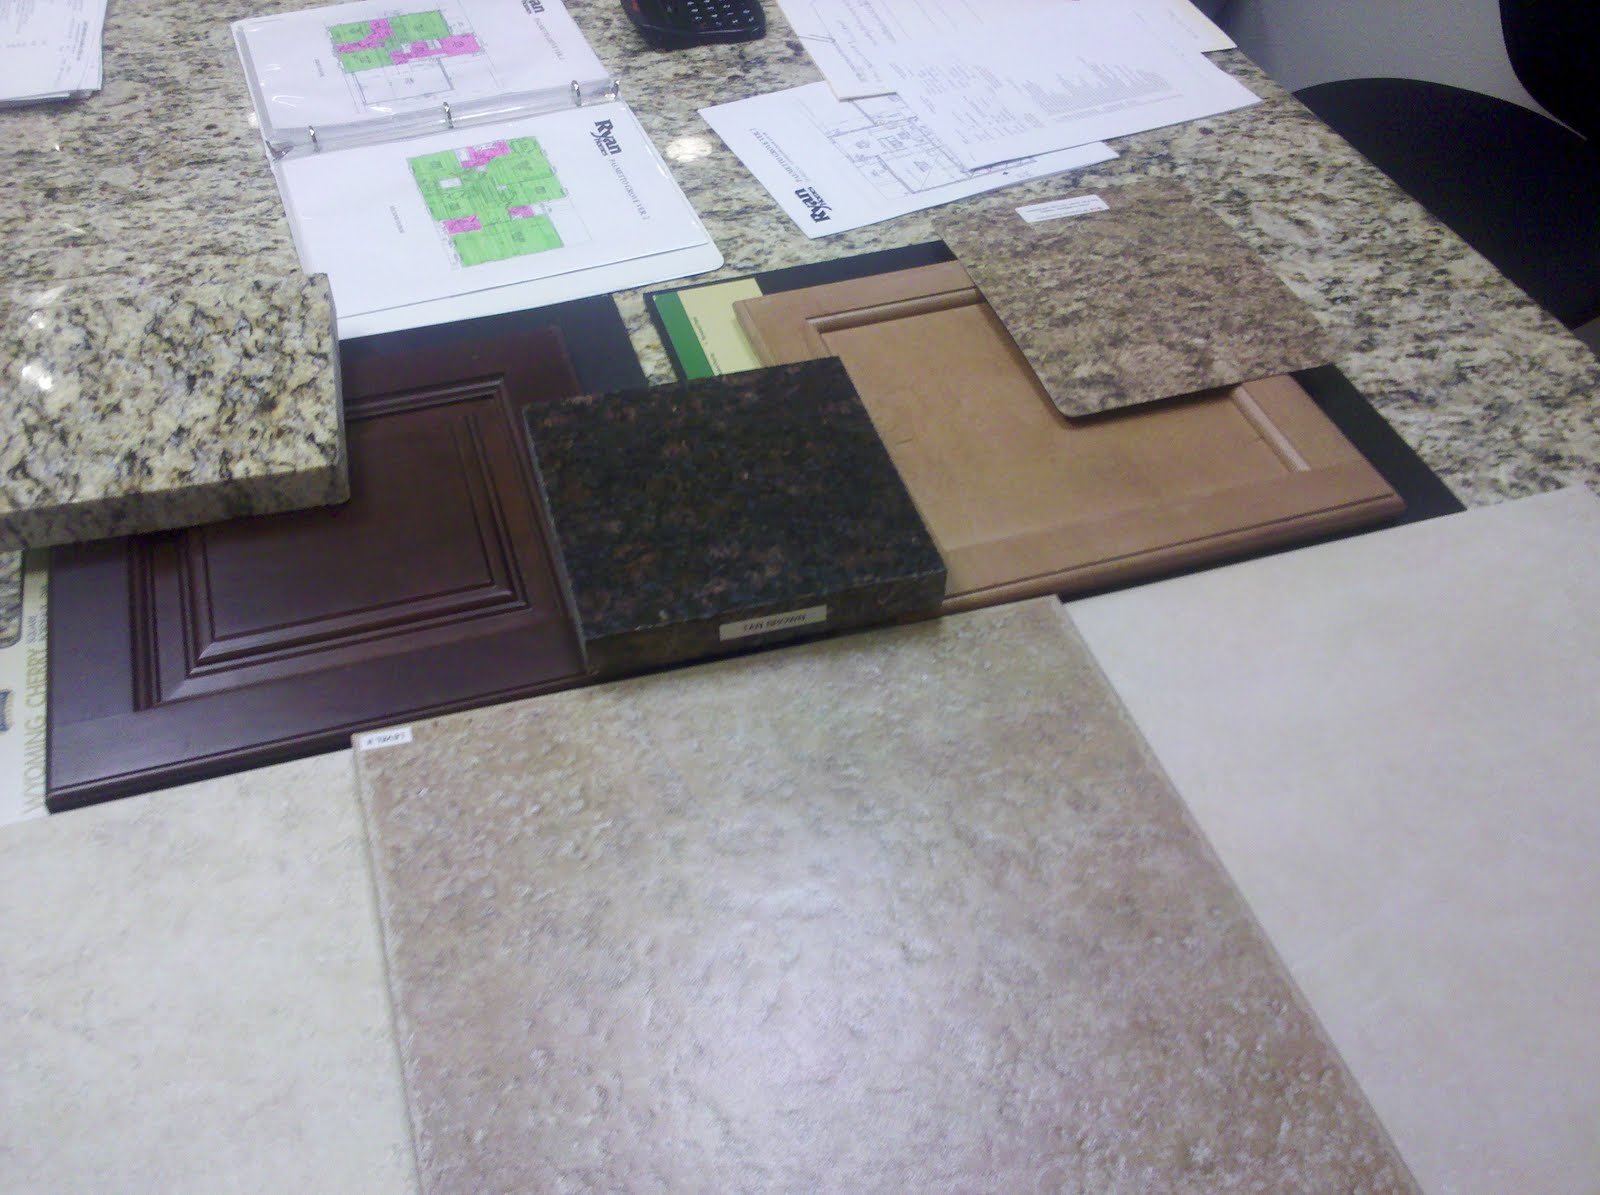 Ryan Homes Palmetto Grove: A few pics of flooring and tile choices